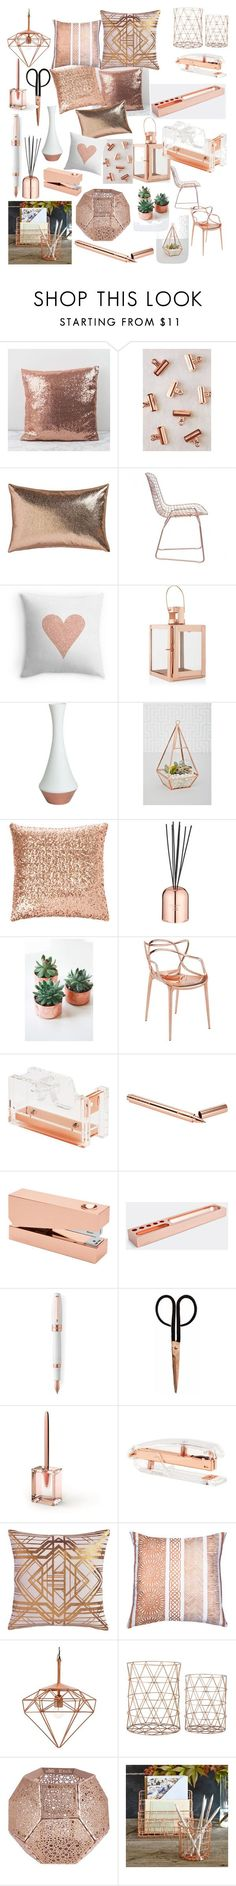 """Copper finishes"" by caitlin1d23-07-10 ❤️ liked on Polyvore featuring interior, interiors, interior design, home, home decor, interior decorating, Urban Outfitters, CB2, Zuo and Pillow Decor"